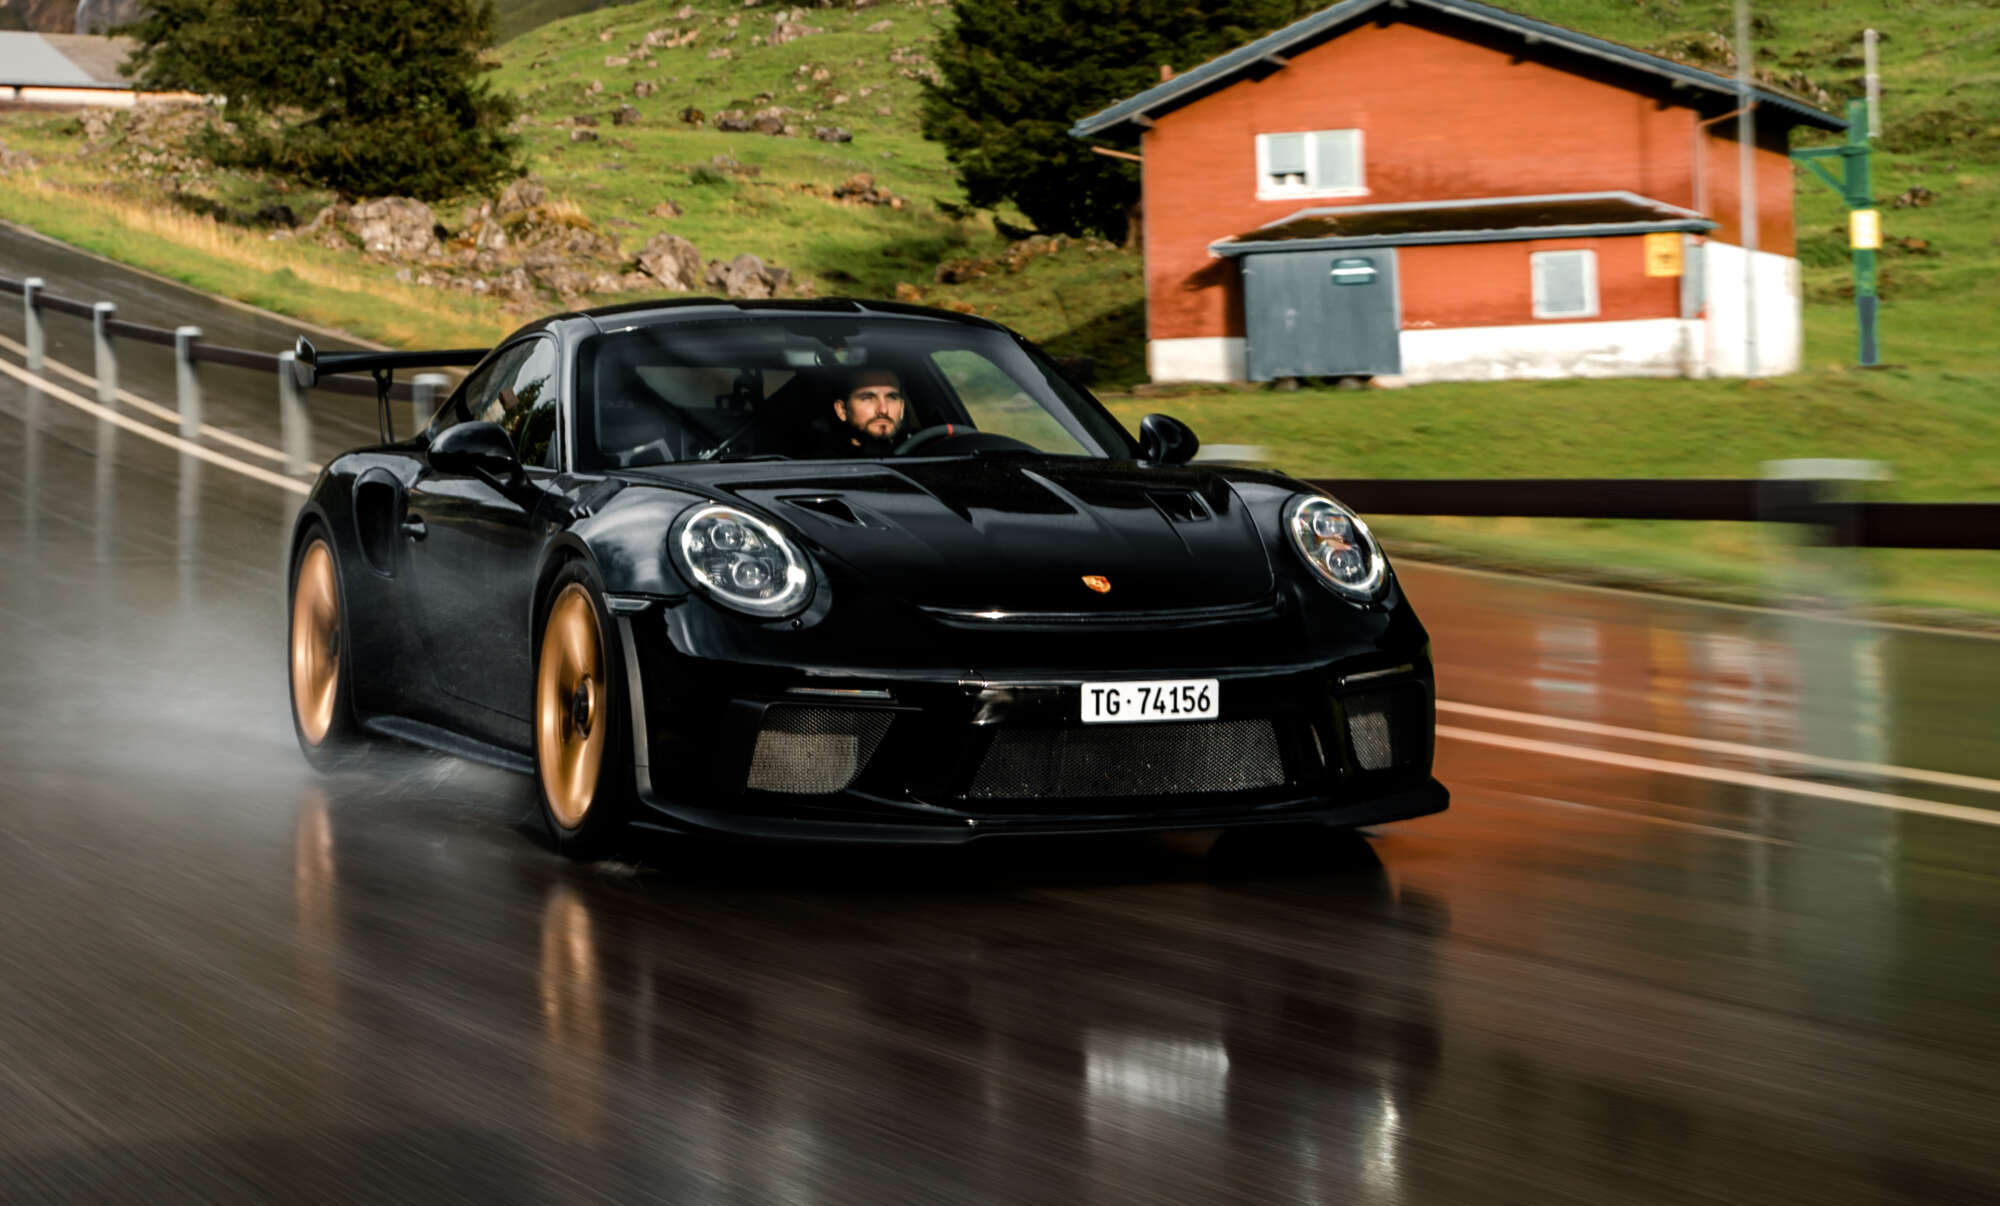 Tim and his <br /> Porsche 911 GT3 RS